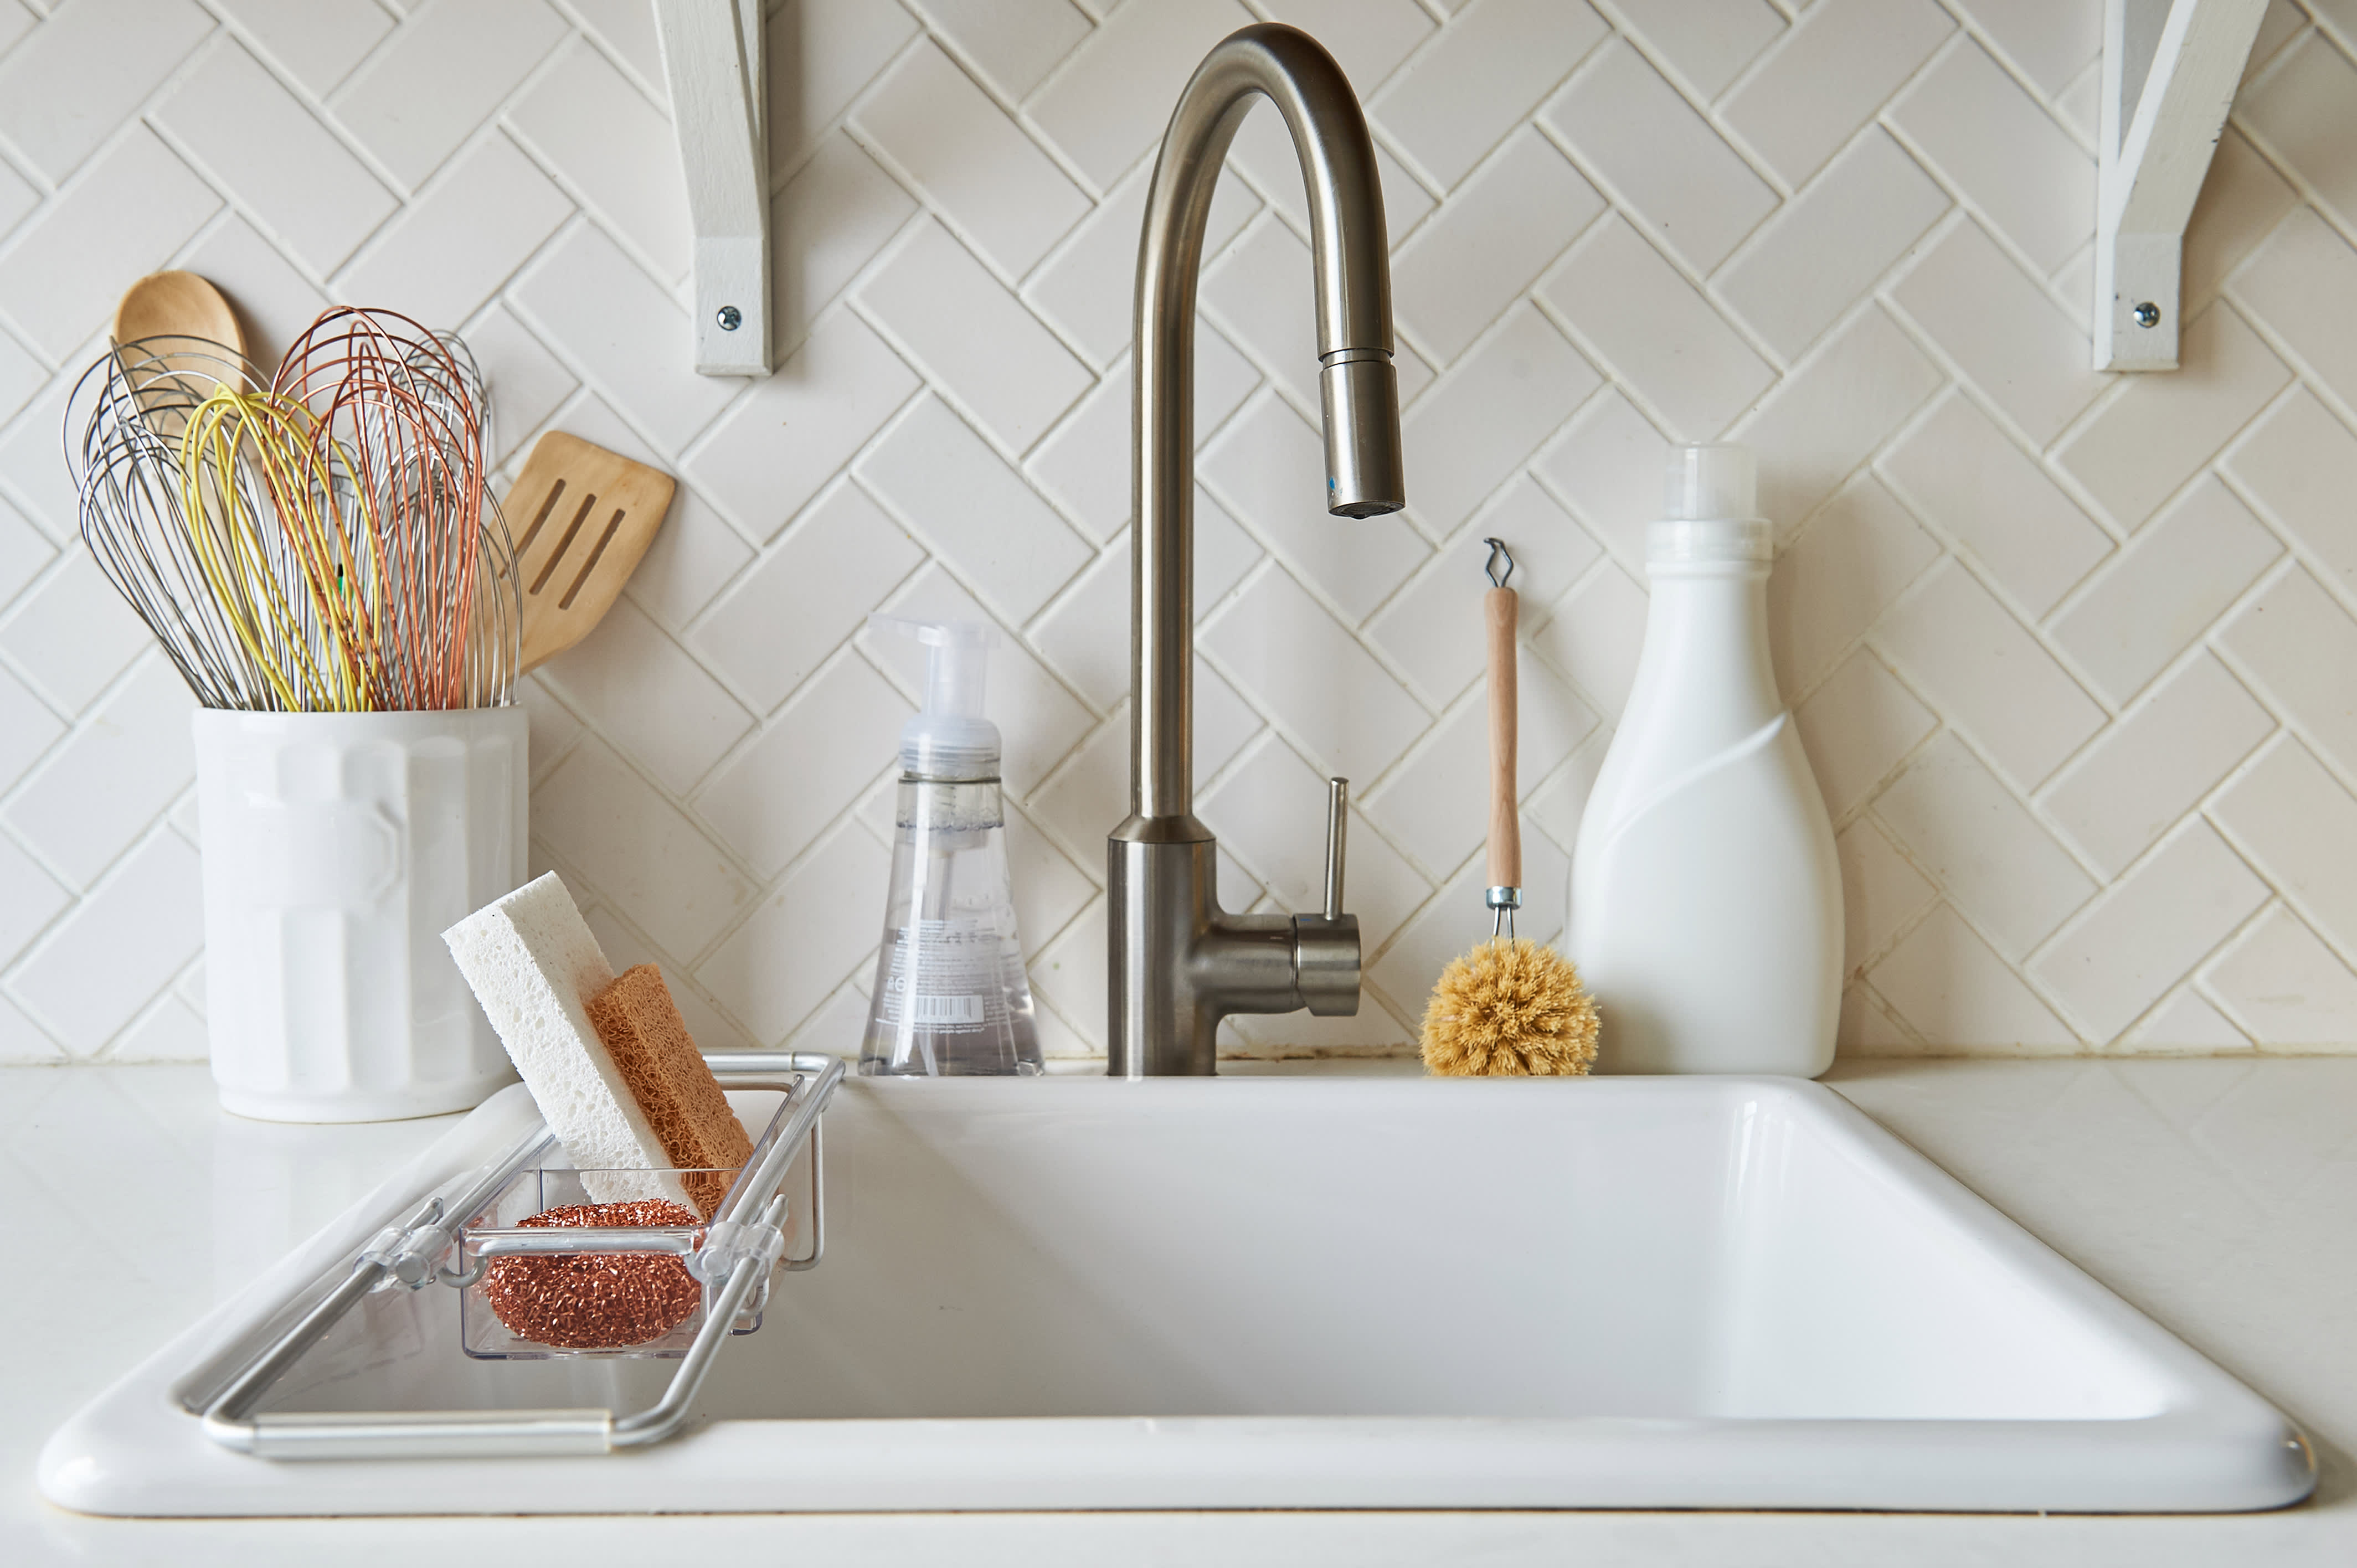 5fa3c285d23 10 Efficient Dish-Washing Tactics to Try (from People Who Hate to Do Them)